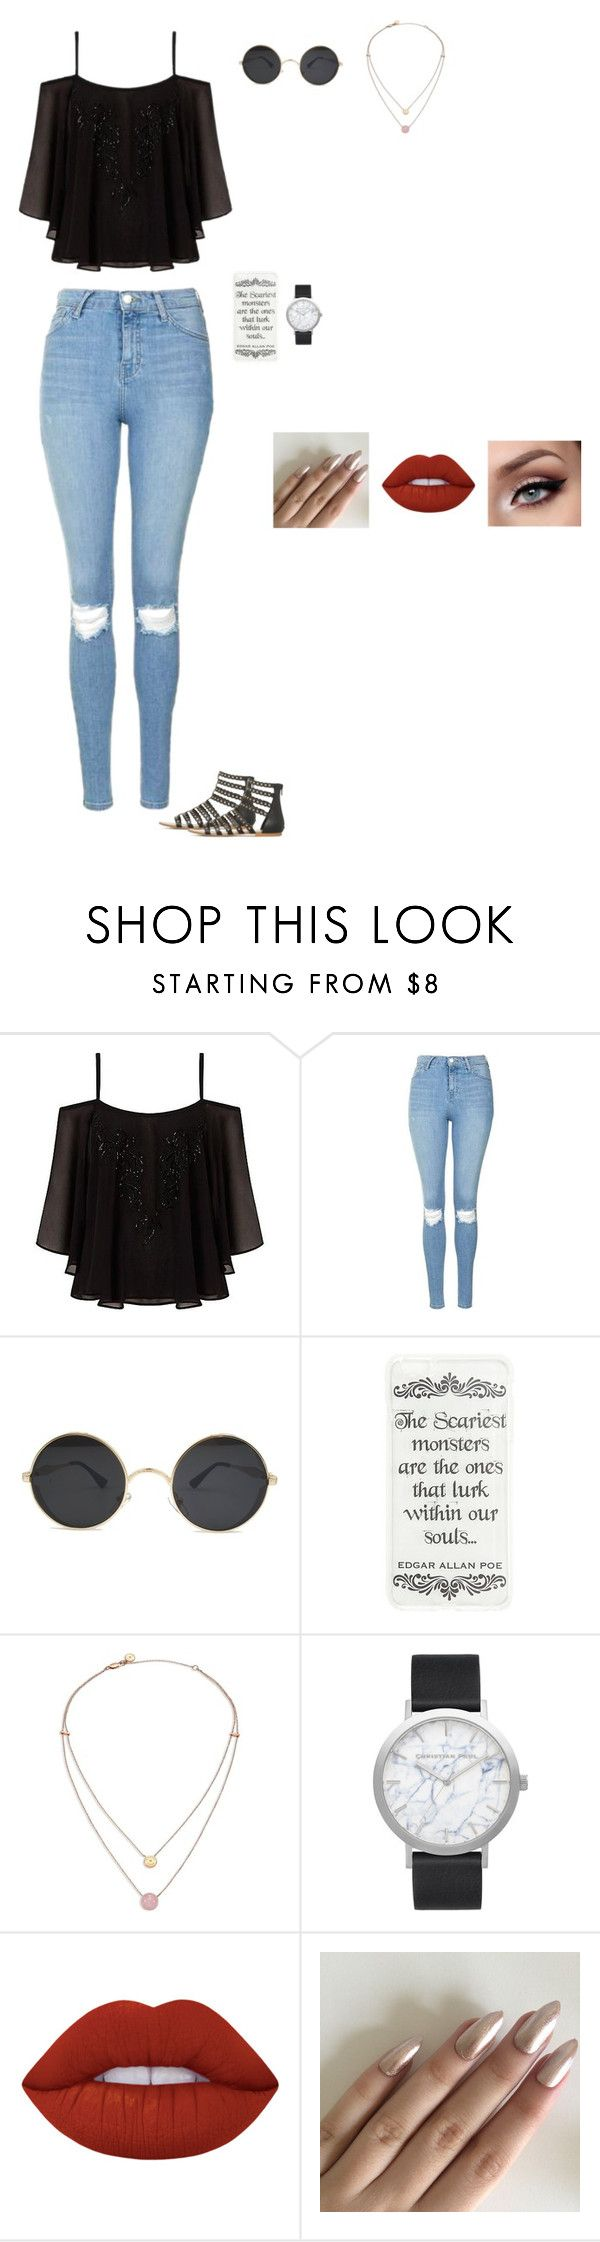 Untitled #150 by sing-into-life on Polyvore featuring Lipsy, Topshop, Elwood, Michael Kors and Lime Crime